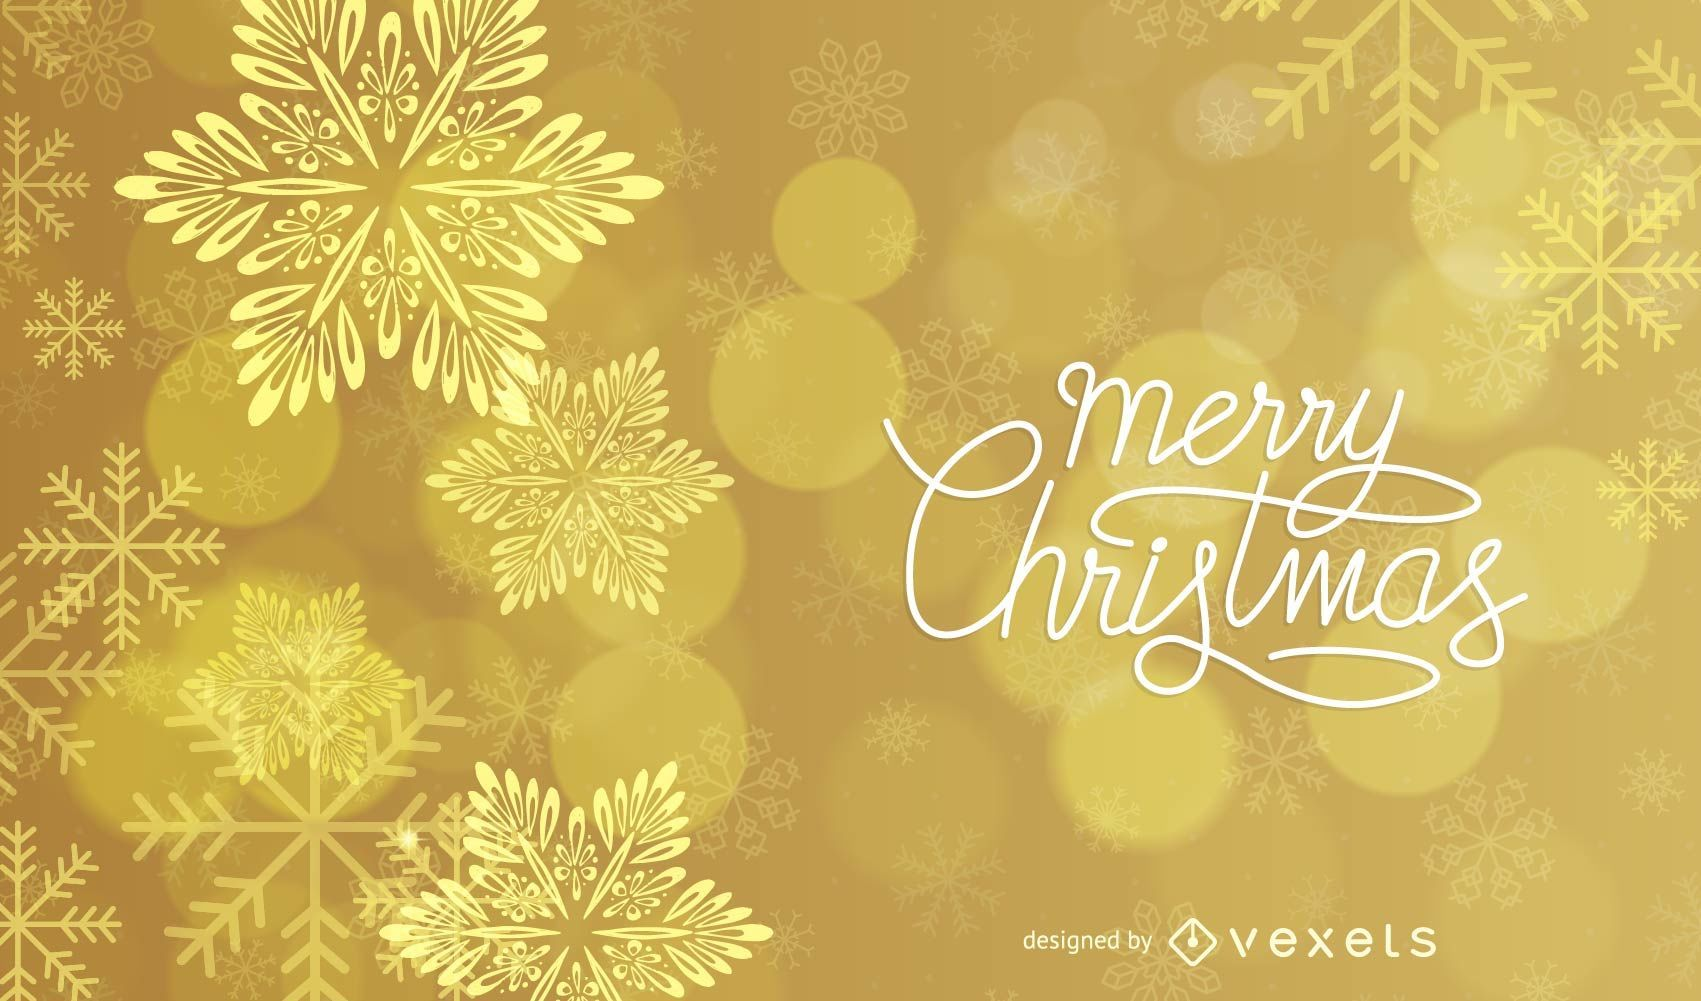 Shiny Gold Starry & Snowflakes Christmas Background